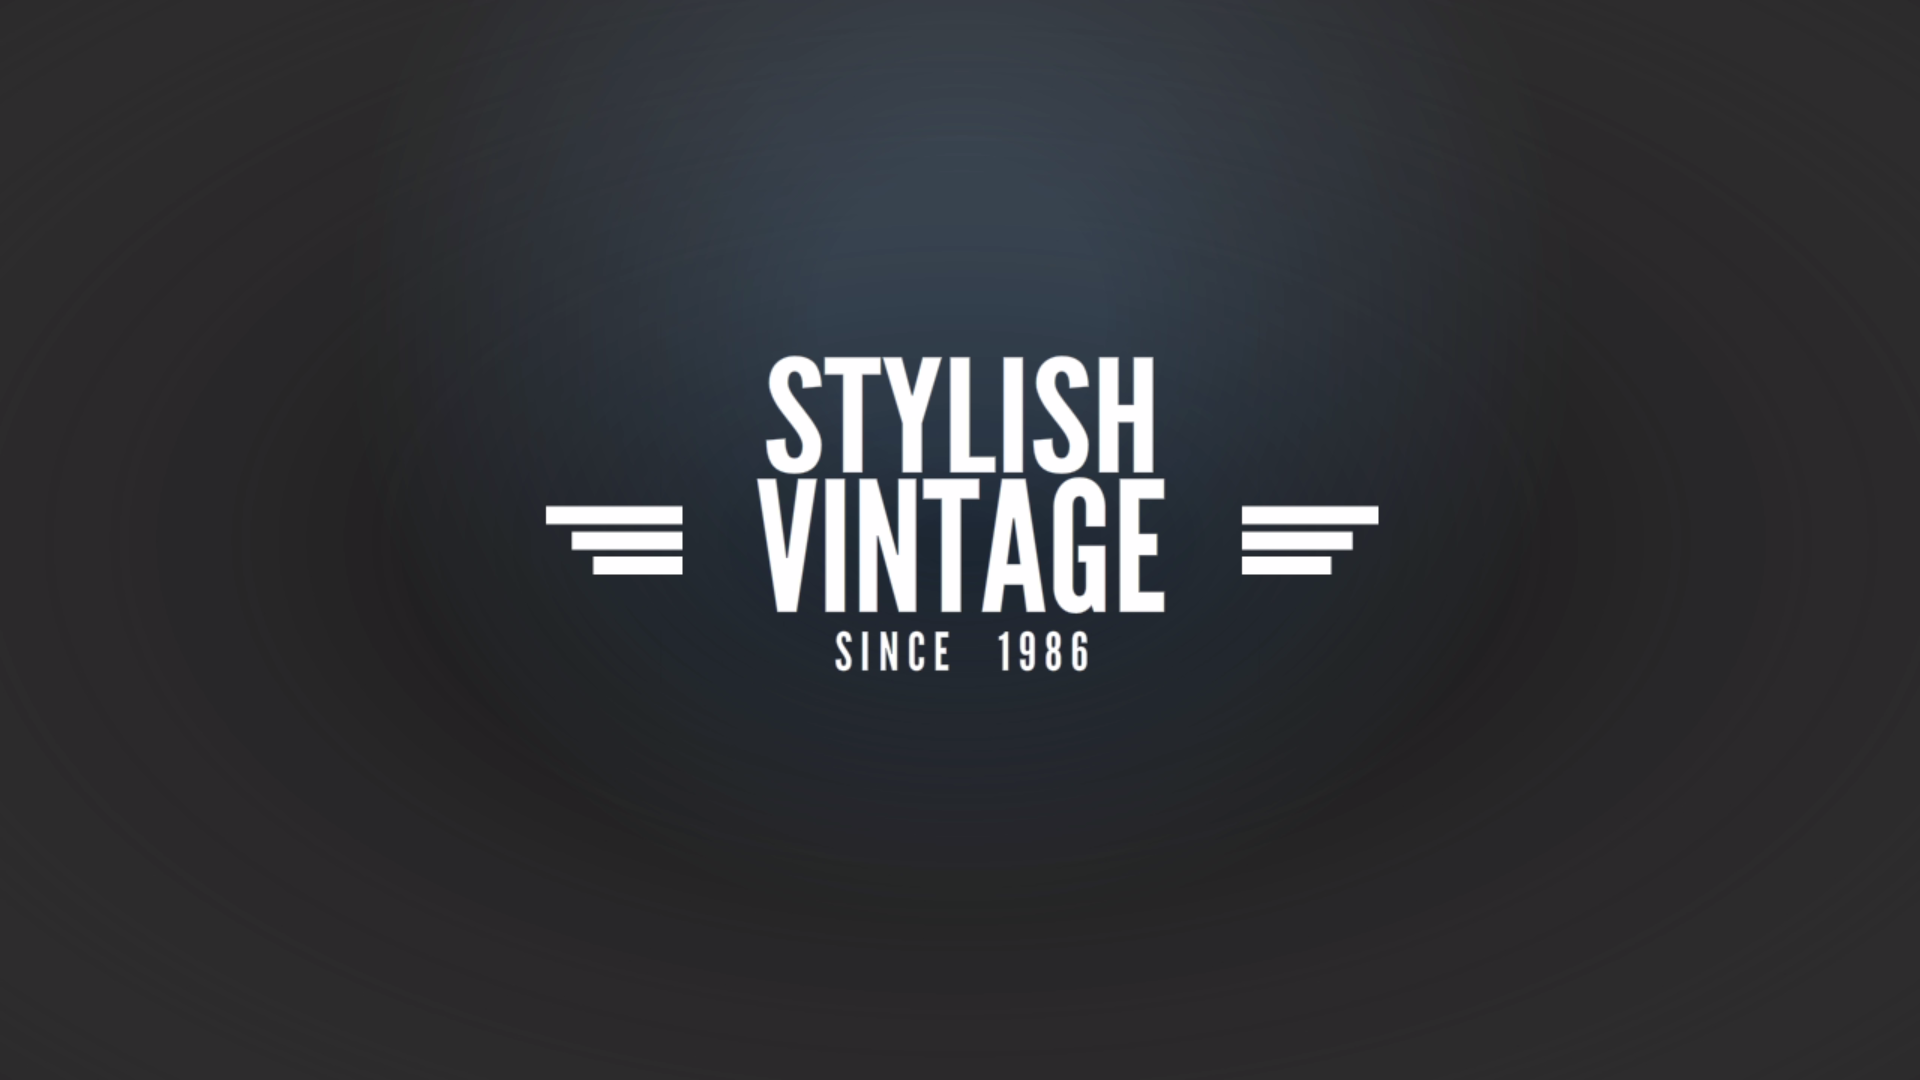 Vintage & Retro Badges Titles VideoMaker Fx Slides